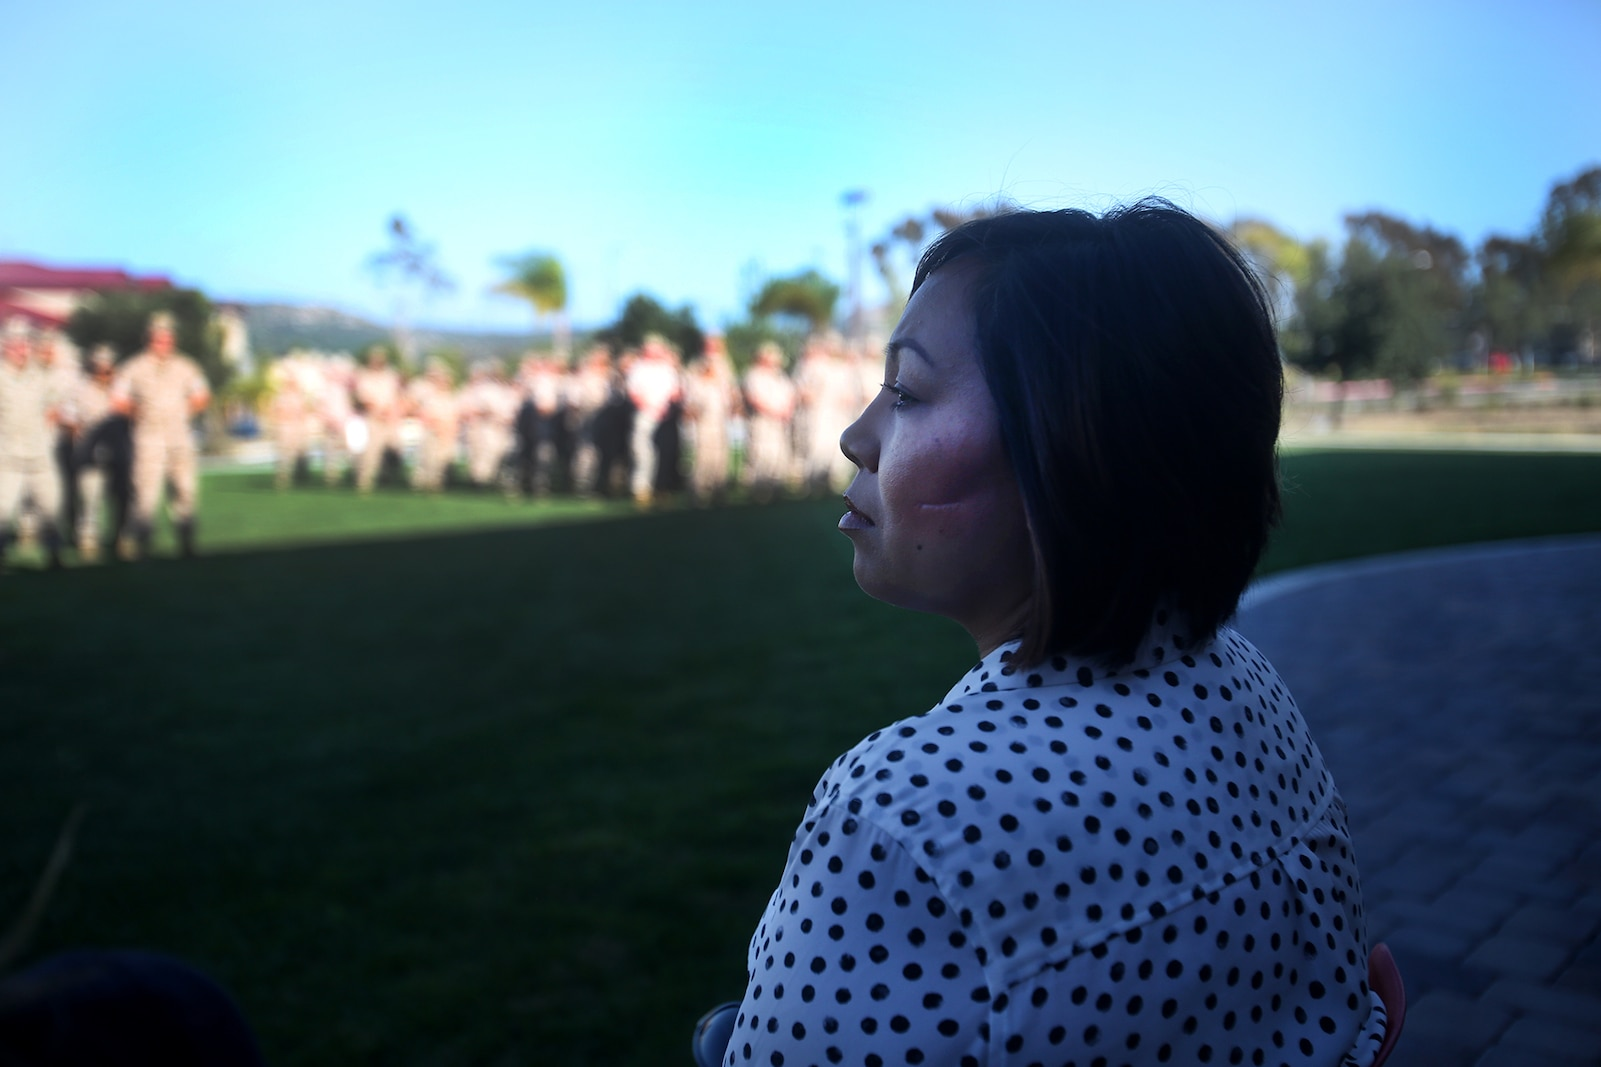 Jennifer Barela, one of Chief Petty Officer Jaclyn Place's neighbors and the survivors of the brutal attack, looks out at dozens of Marines during Place's award ceremony aboard Camp Pendleton, Calif., March 11, 2016. Place, a lead chief petty officer with the Headquarters Regimental Aid Station, 1st Marine Logistics Group, was awarded an impact Navy and Marine Corps Commendation Medal for her selfless and decisive actions that saved the lives of Barela and her daughter. (U.S. Marine Corps photo by Sgt. Laura Gauna/released)